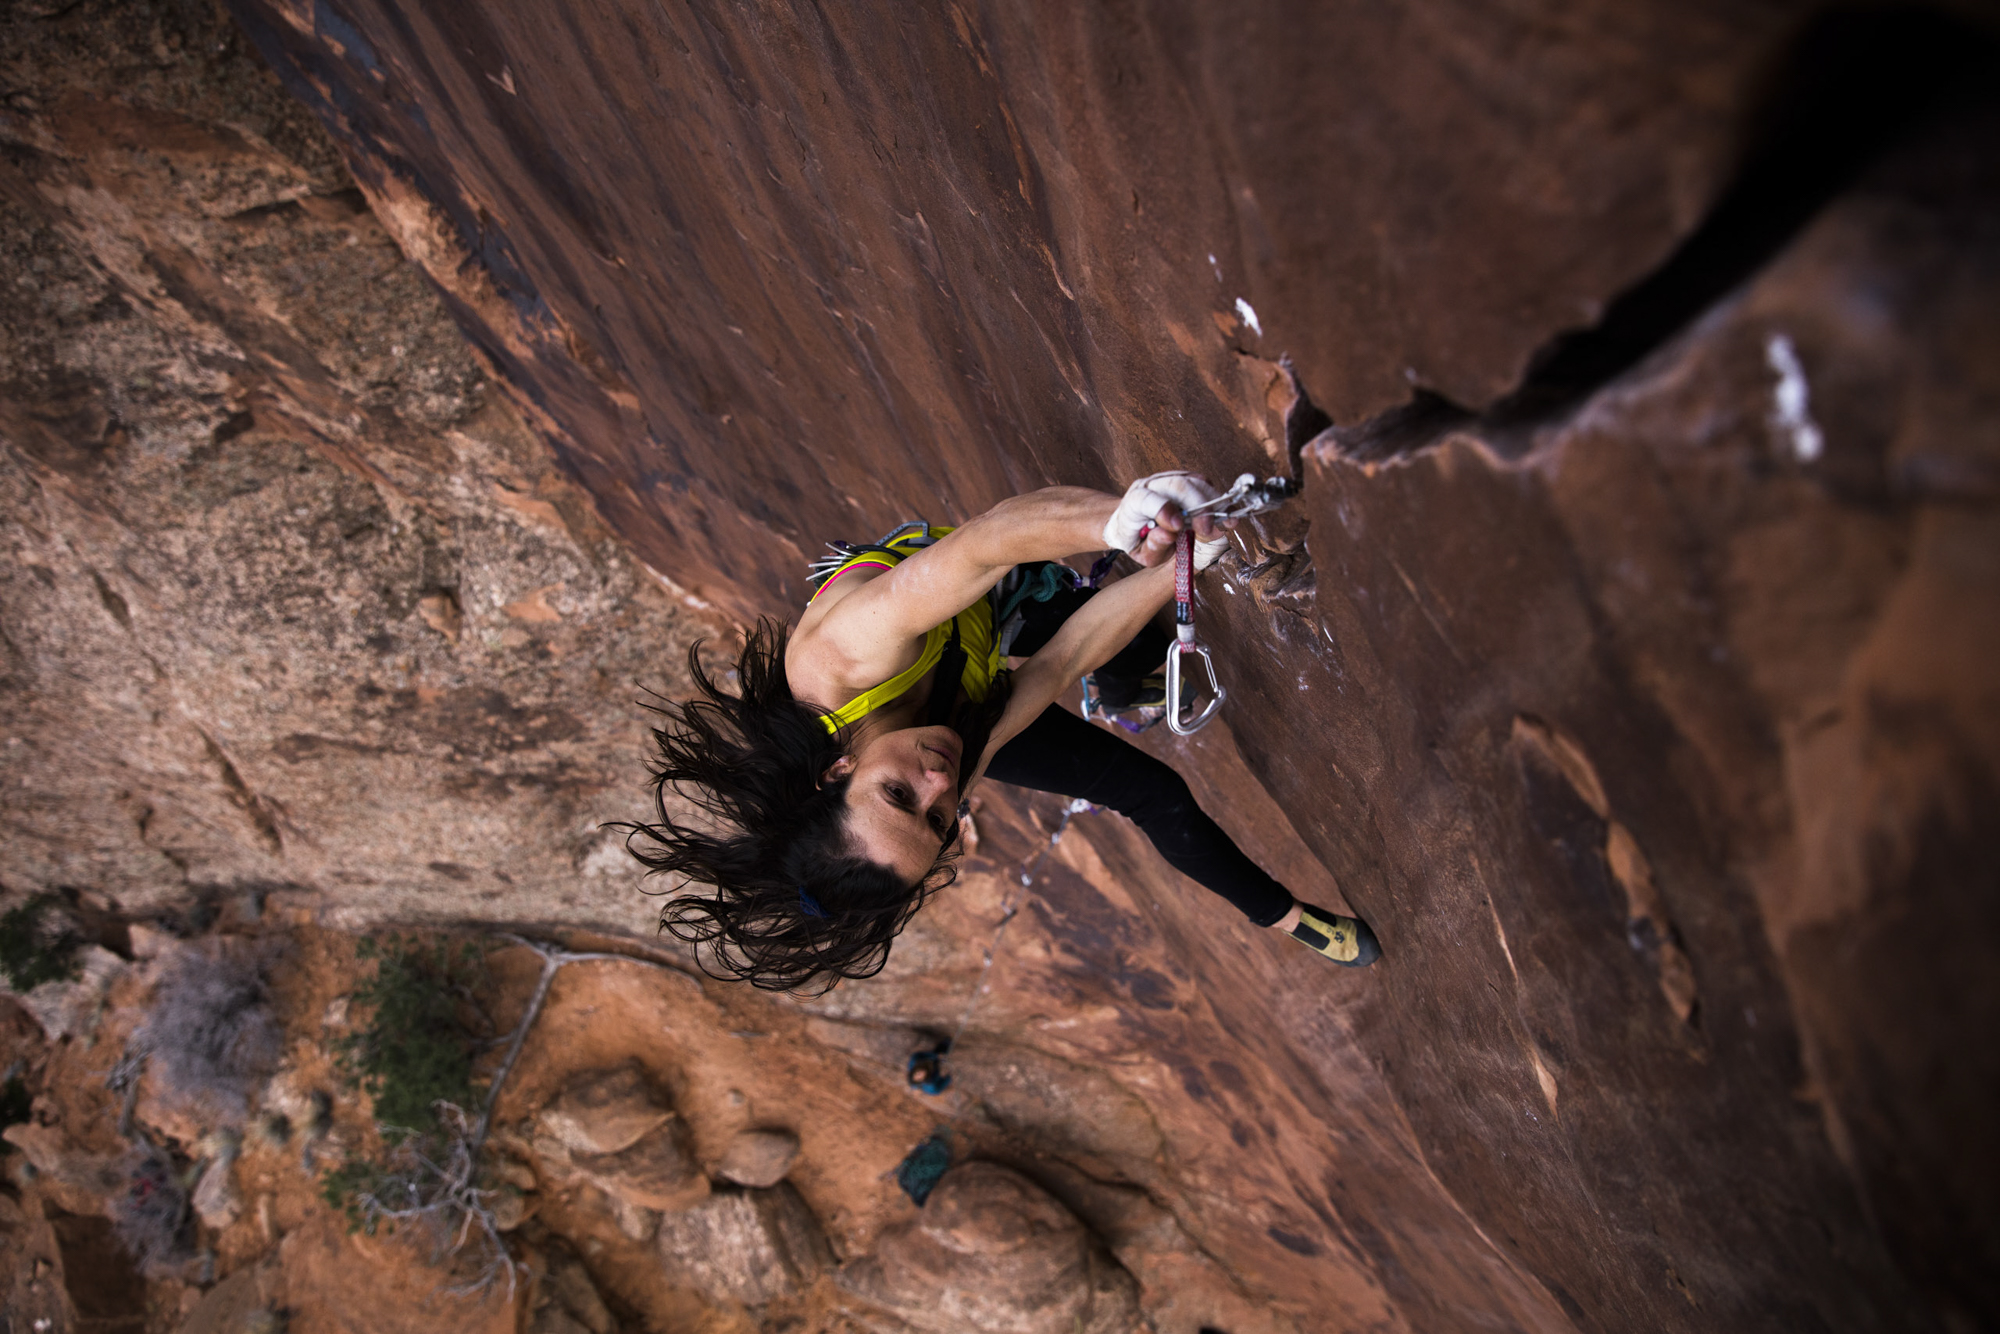 Steph Davis ascends The Joker 5.12+, Moab, Utah/Photo by Krystle Wright